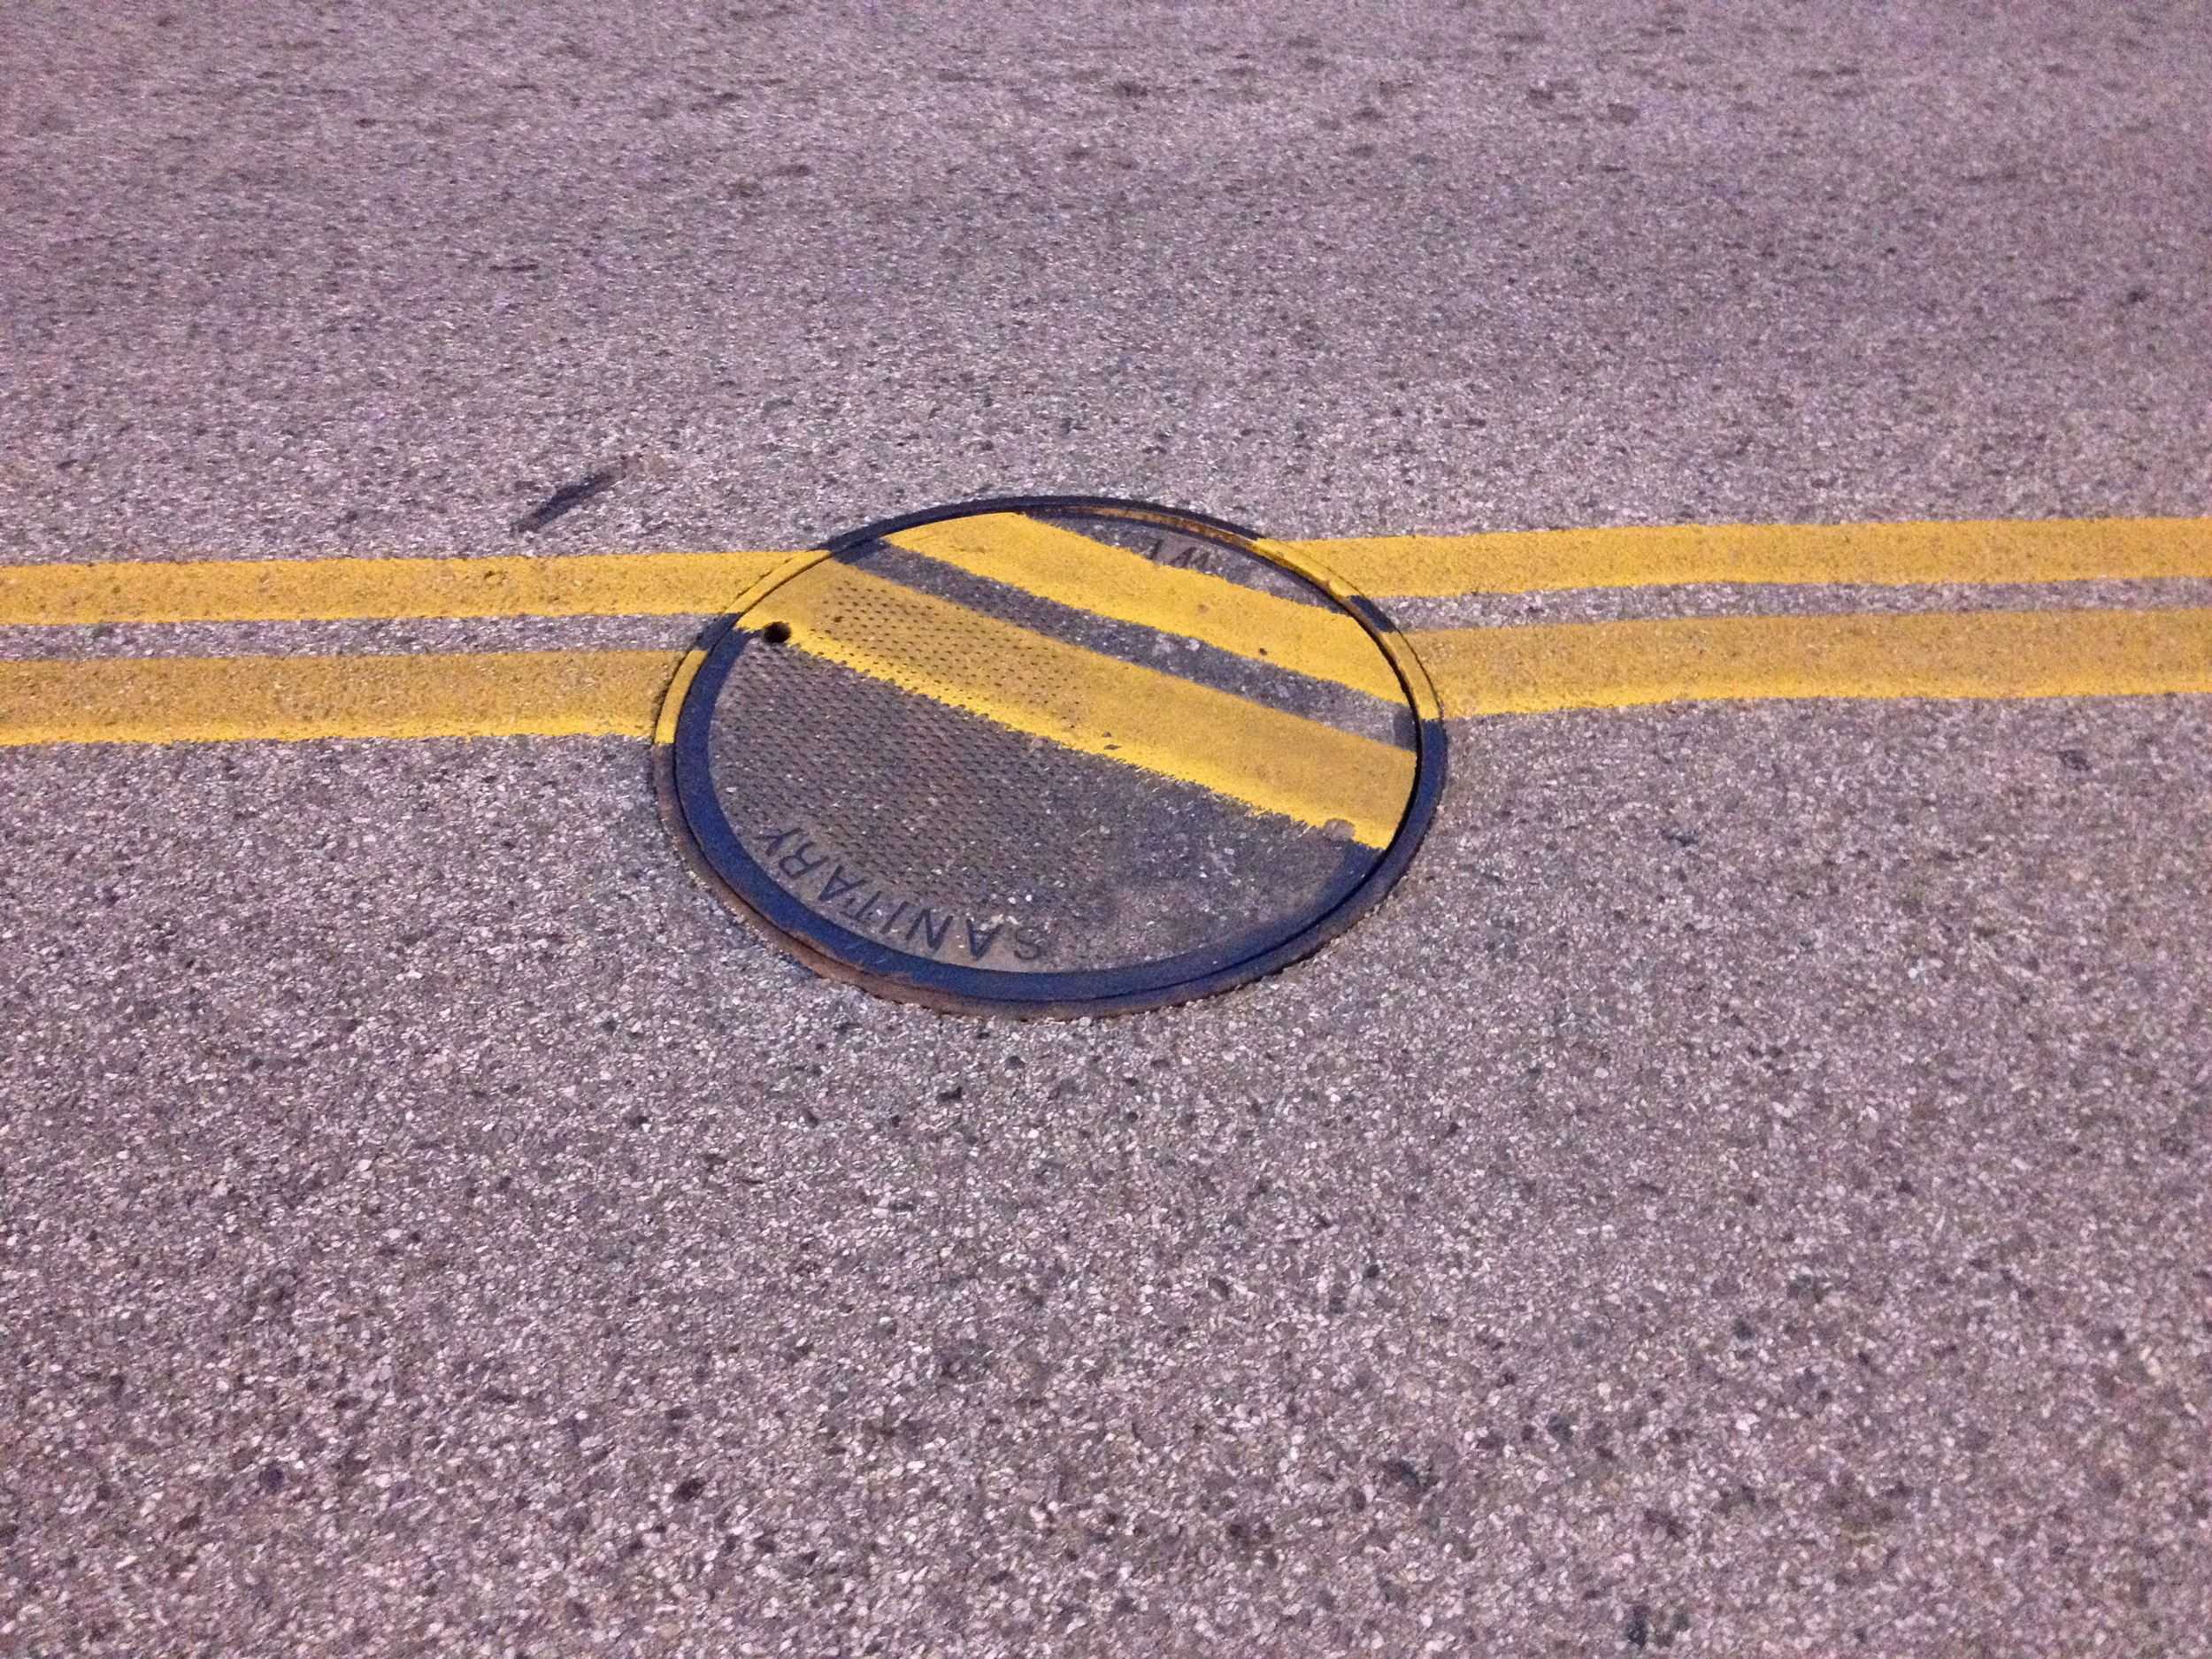 Mr. Duchamp would be quite proud of the sanitation worker who replaced this manhole.